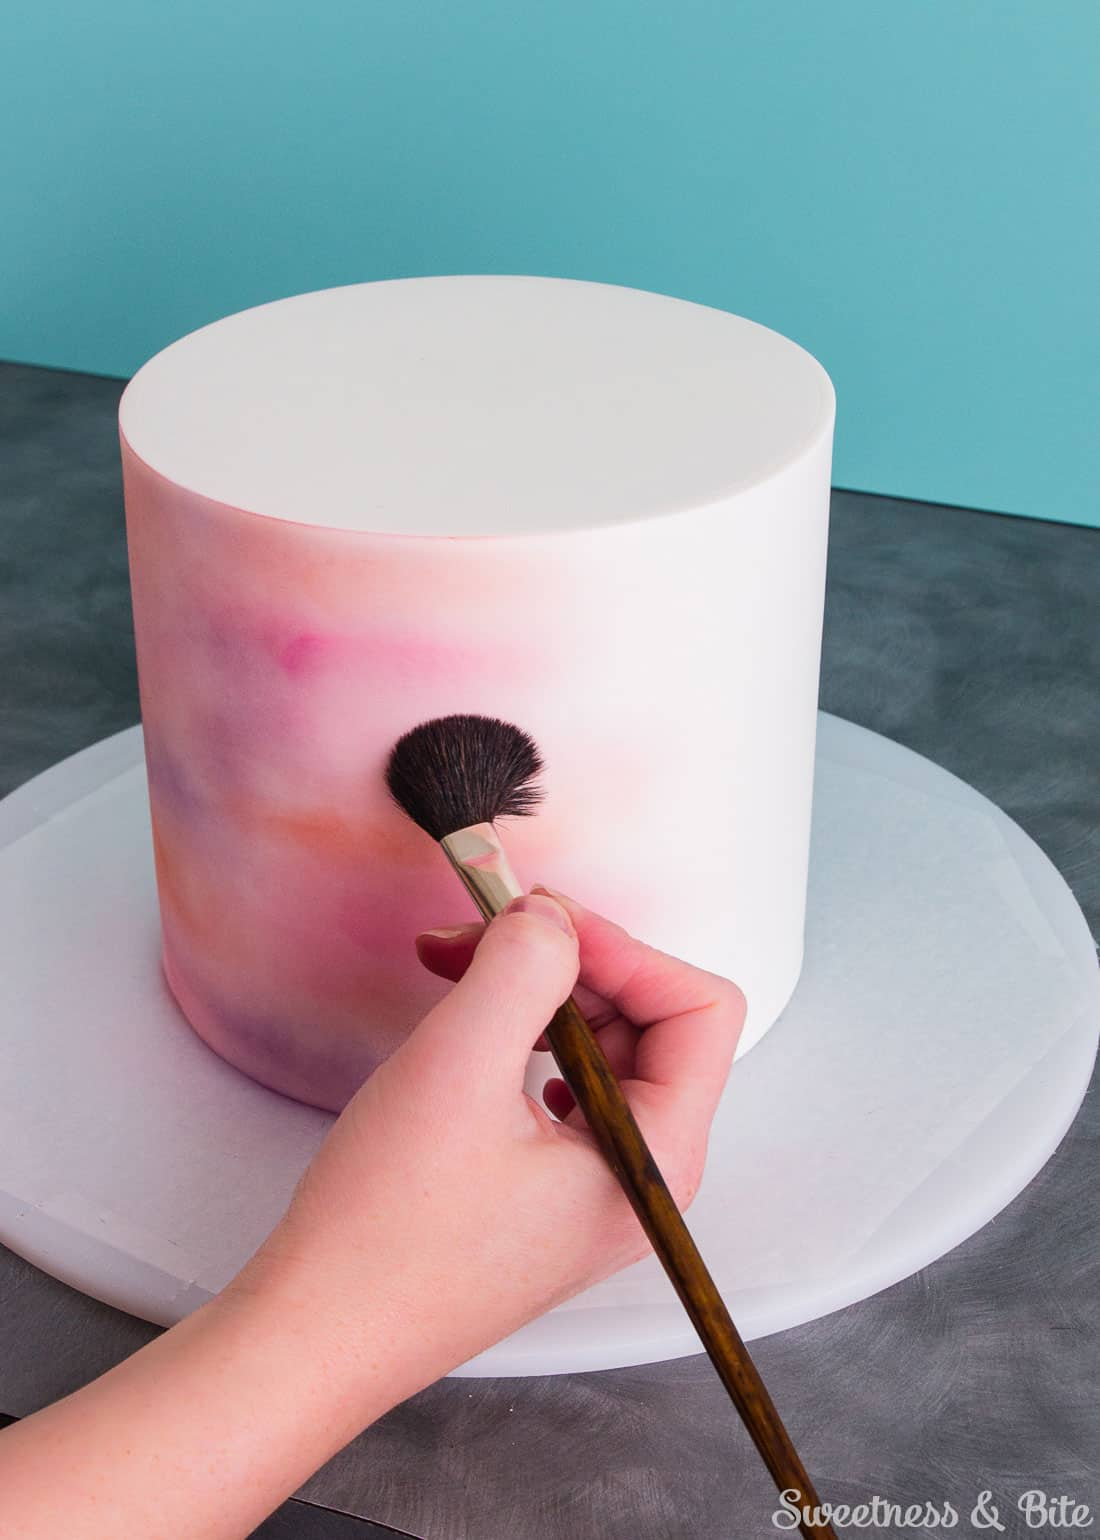 Building up the colour on the cake using a fluffy brush.